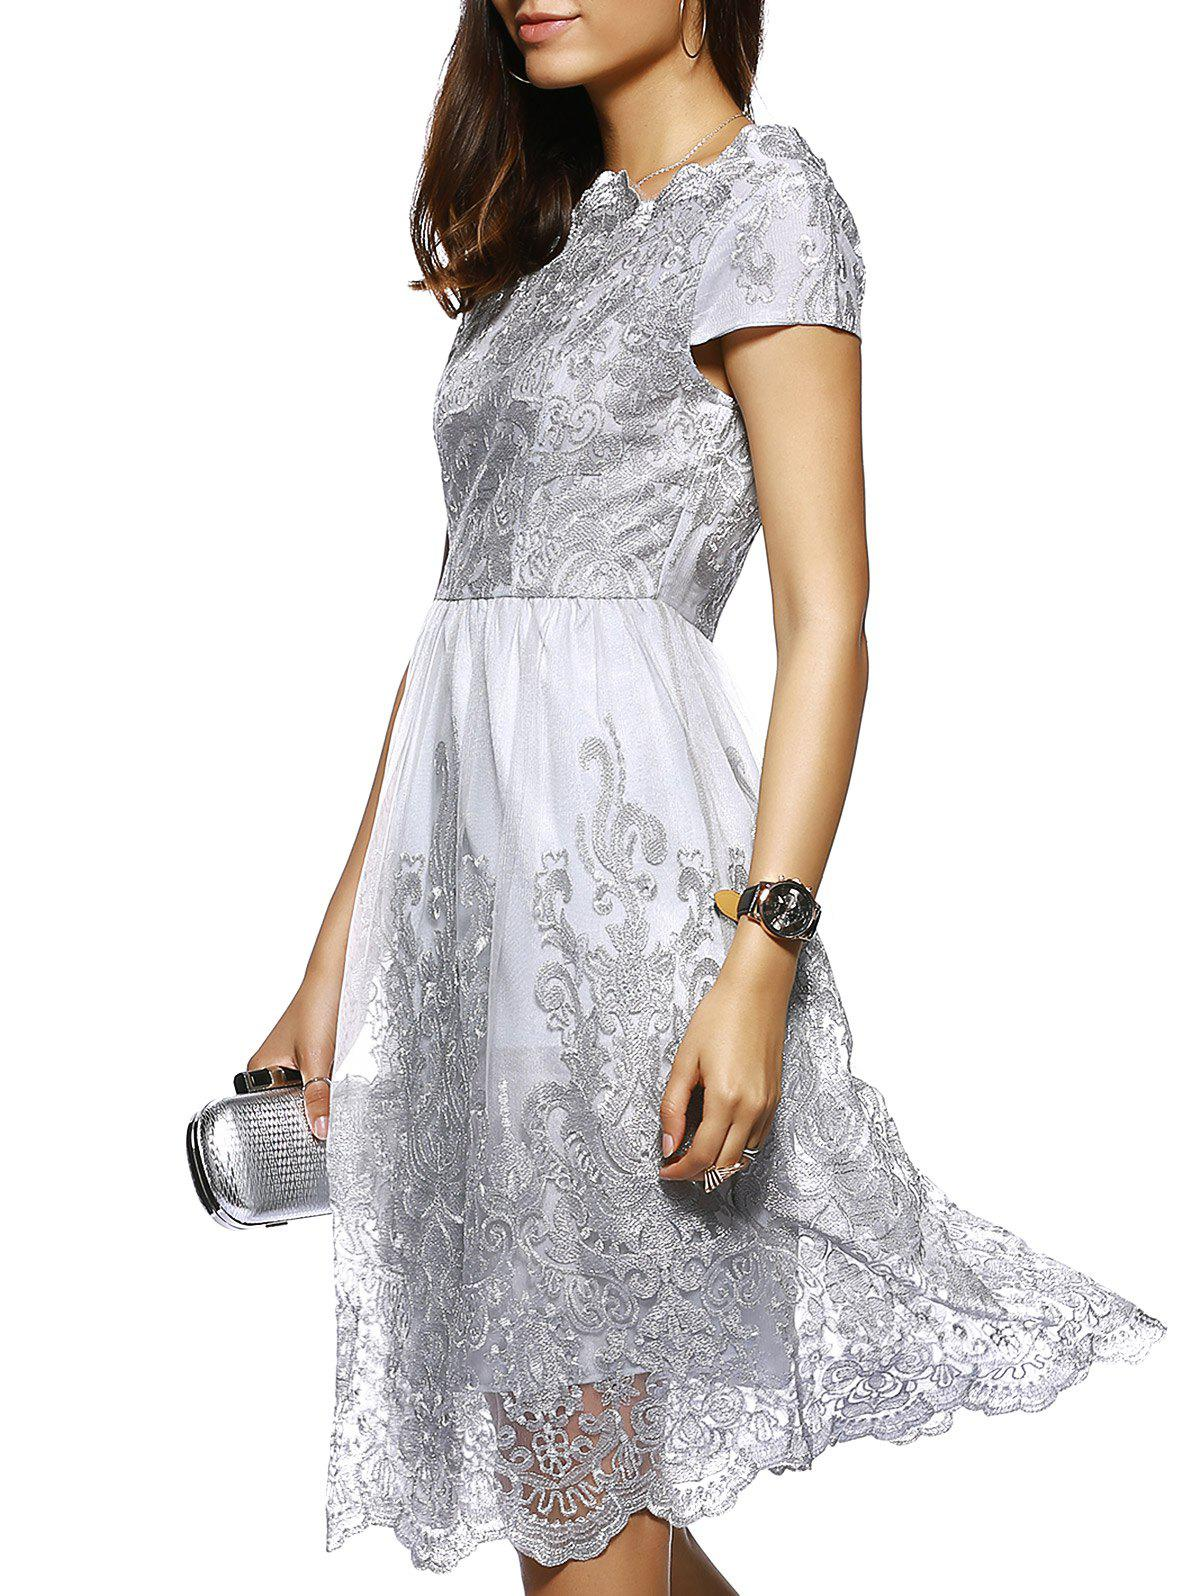 High Waist Laced Embroidery Dress - GRAY XL